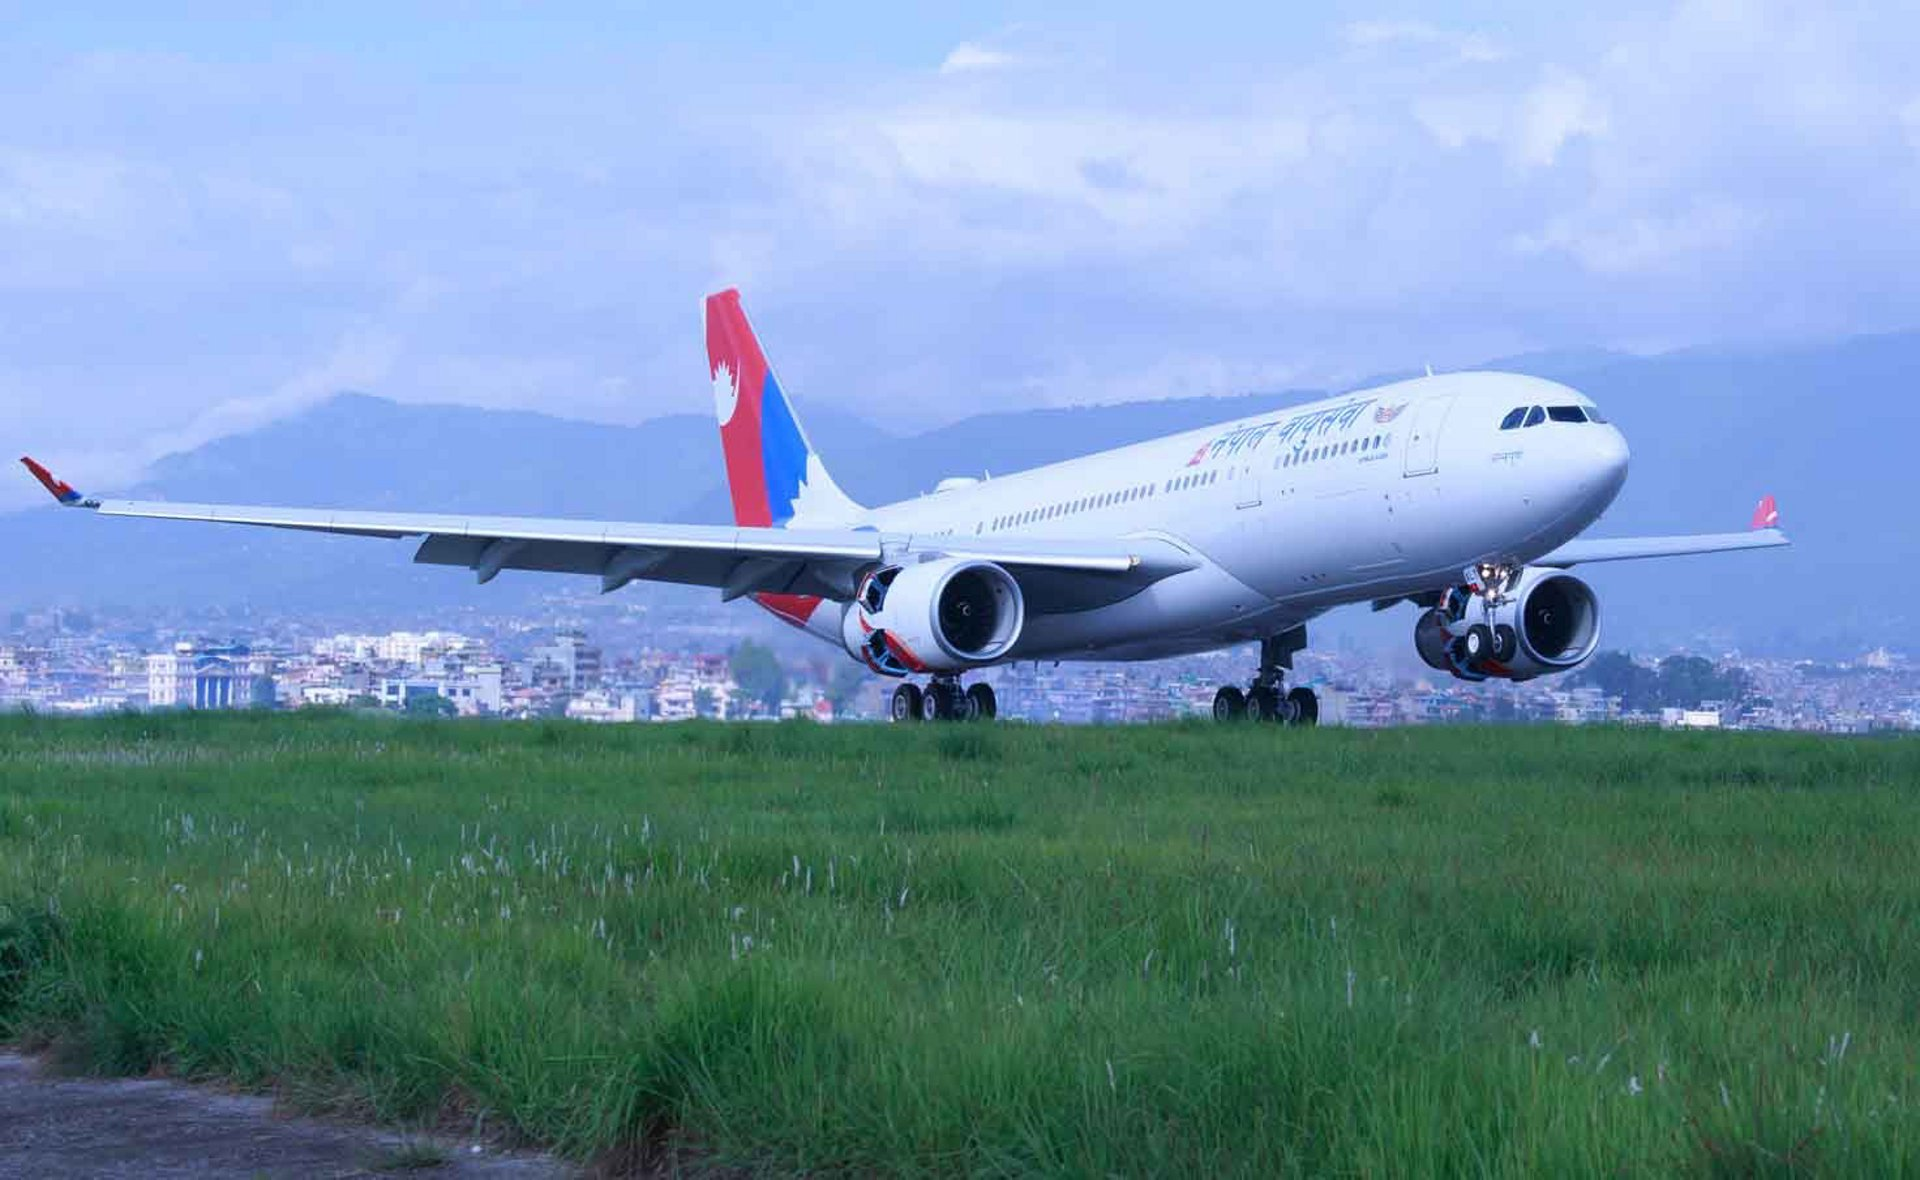 The all-Airbus operator Nepal Airlines signed a deal with NAVBLUE in May 2020 to use N-Flight Planning to optimize their flight operations.